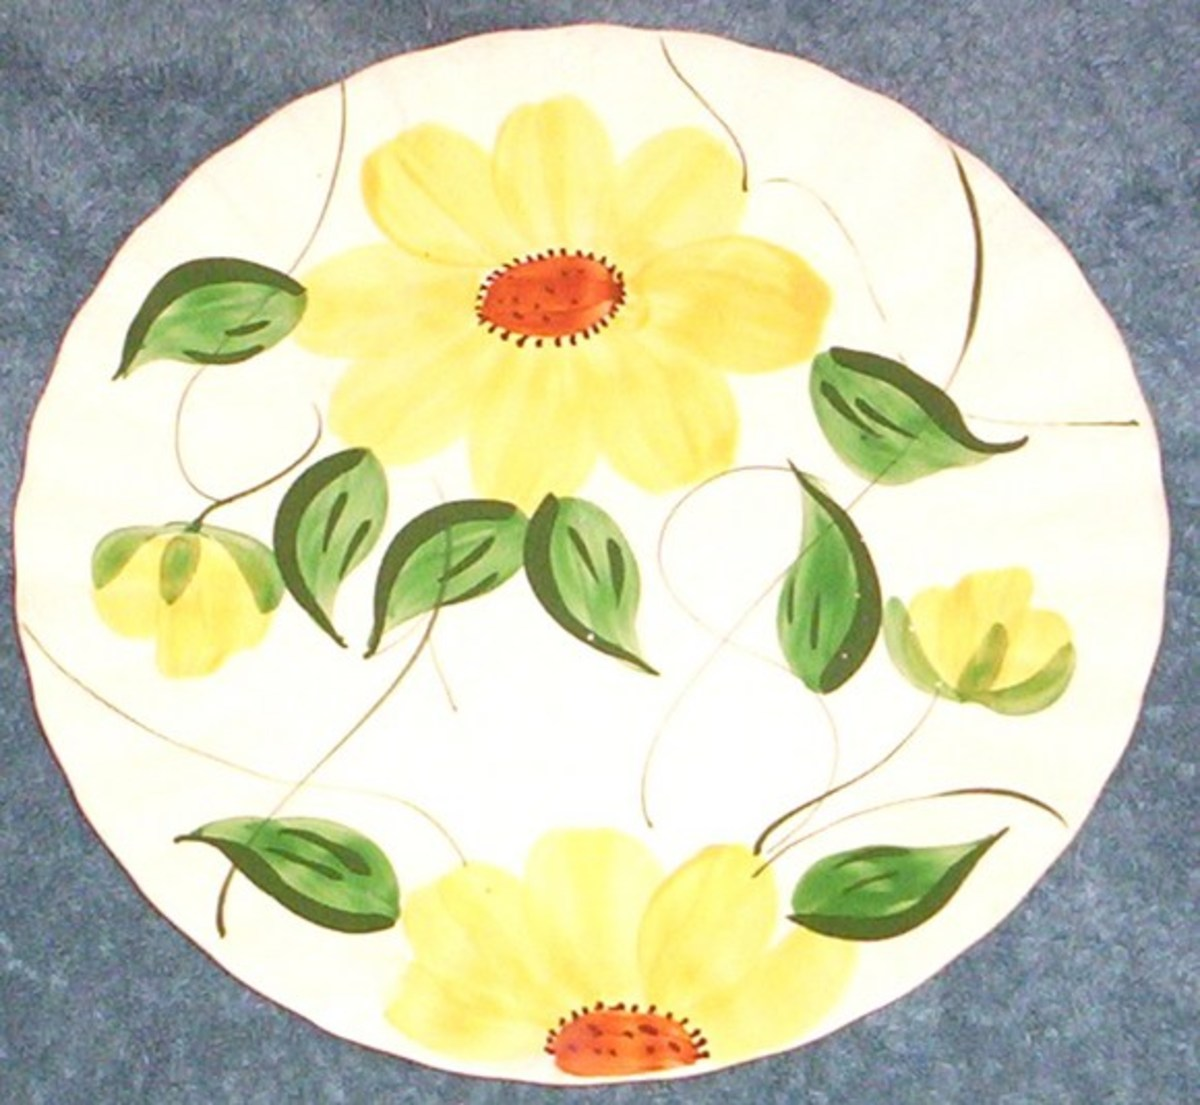 This cheerful dish is an example of the Sunflower pattern.